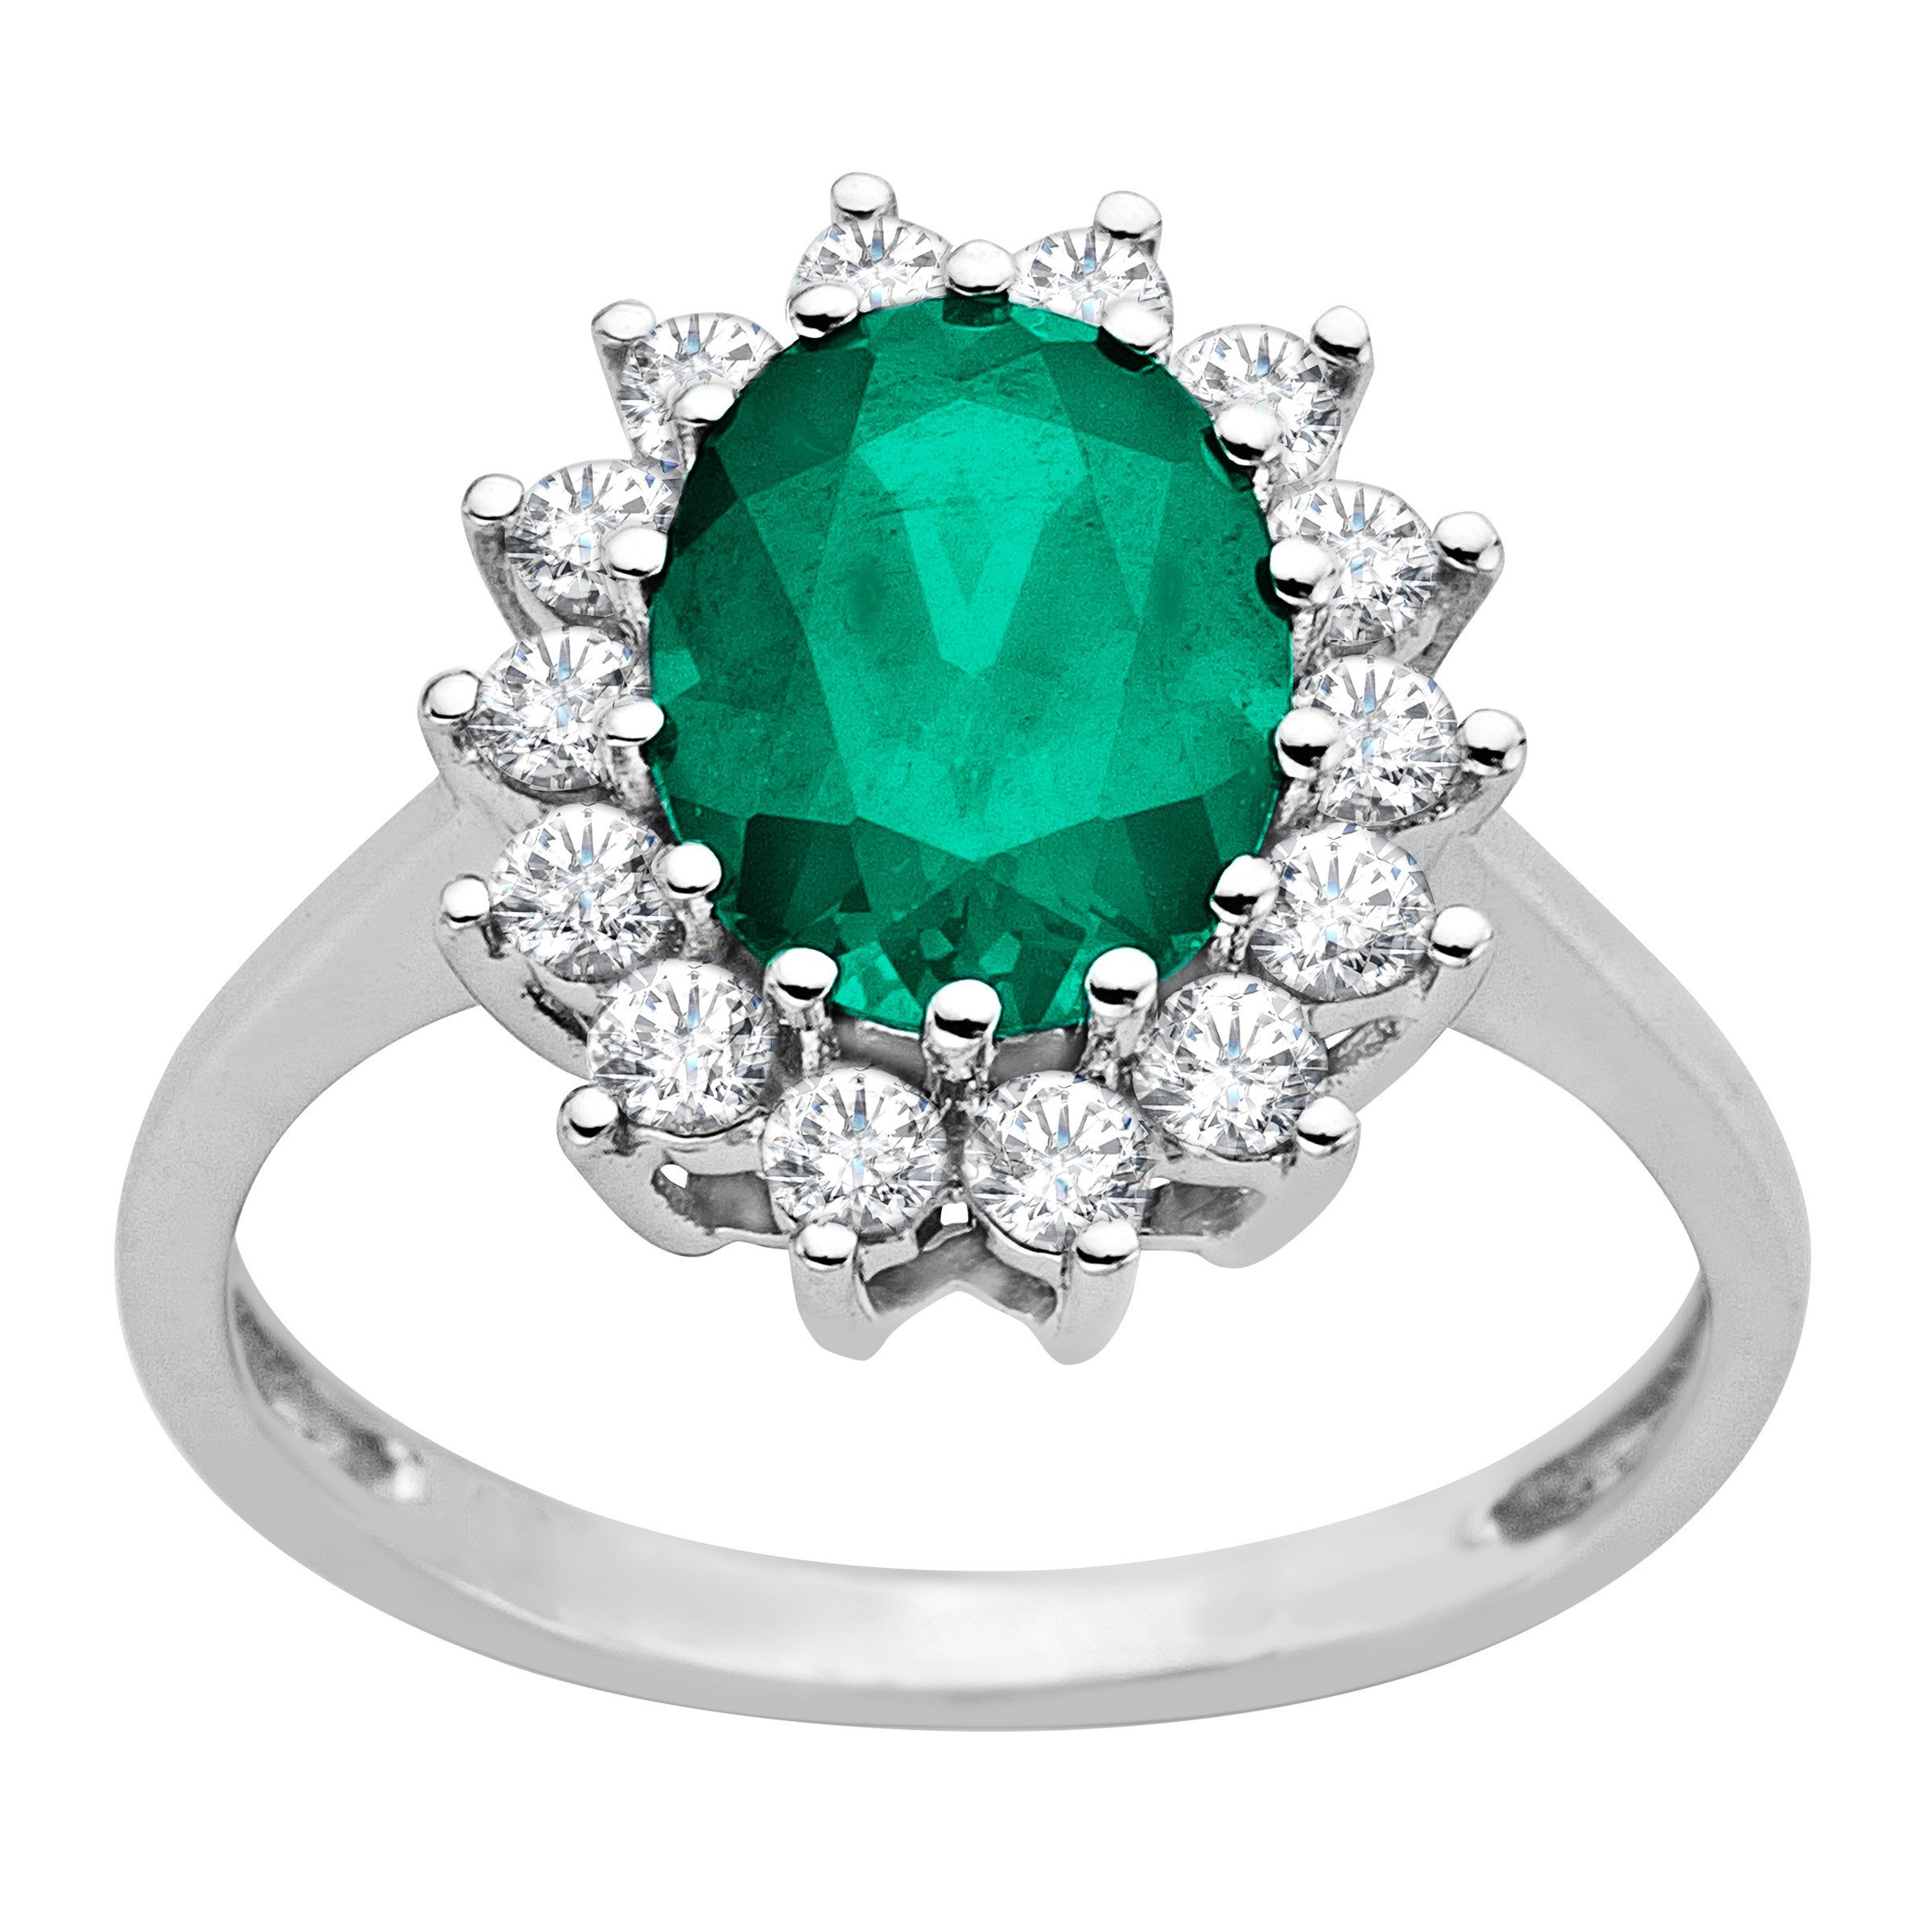 2 1/6 ct Created Emerald and White Sapphire Ring in 10K White Gold Size 7